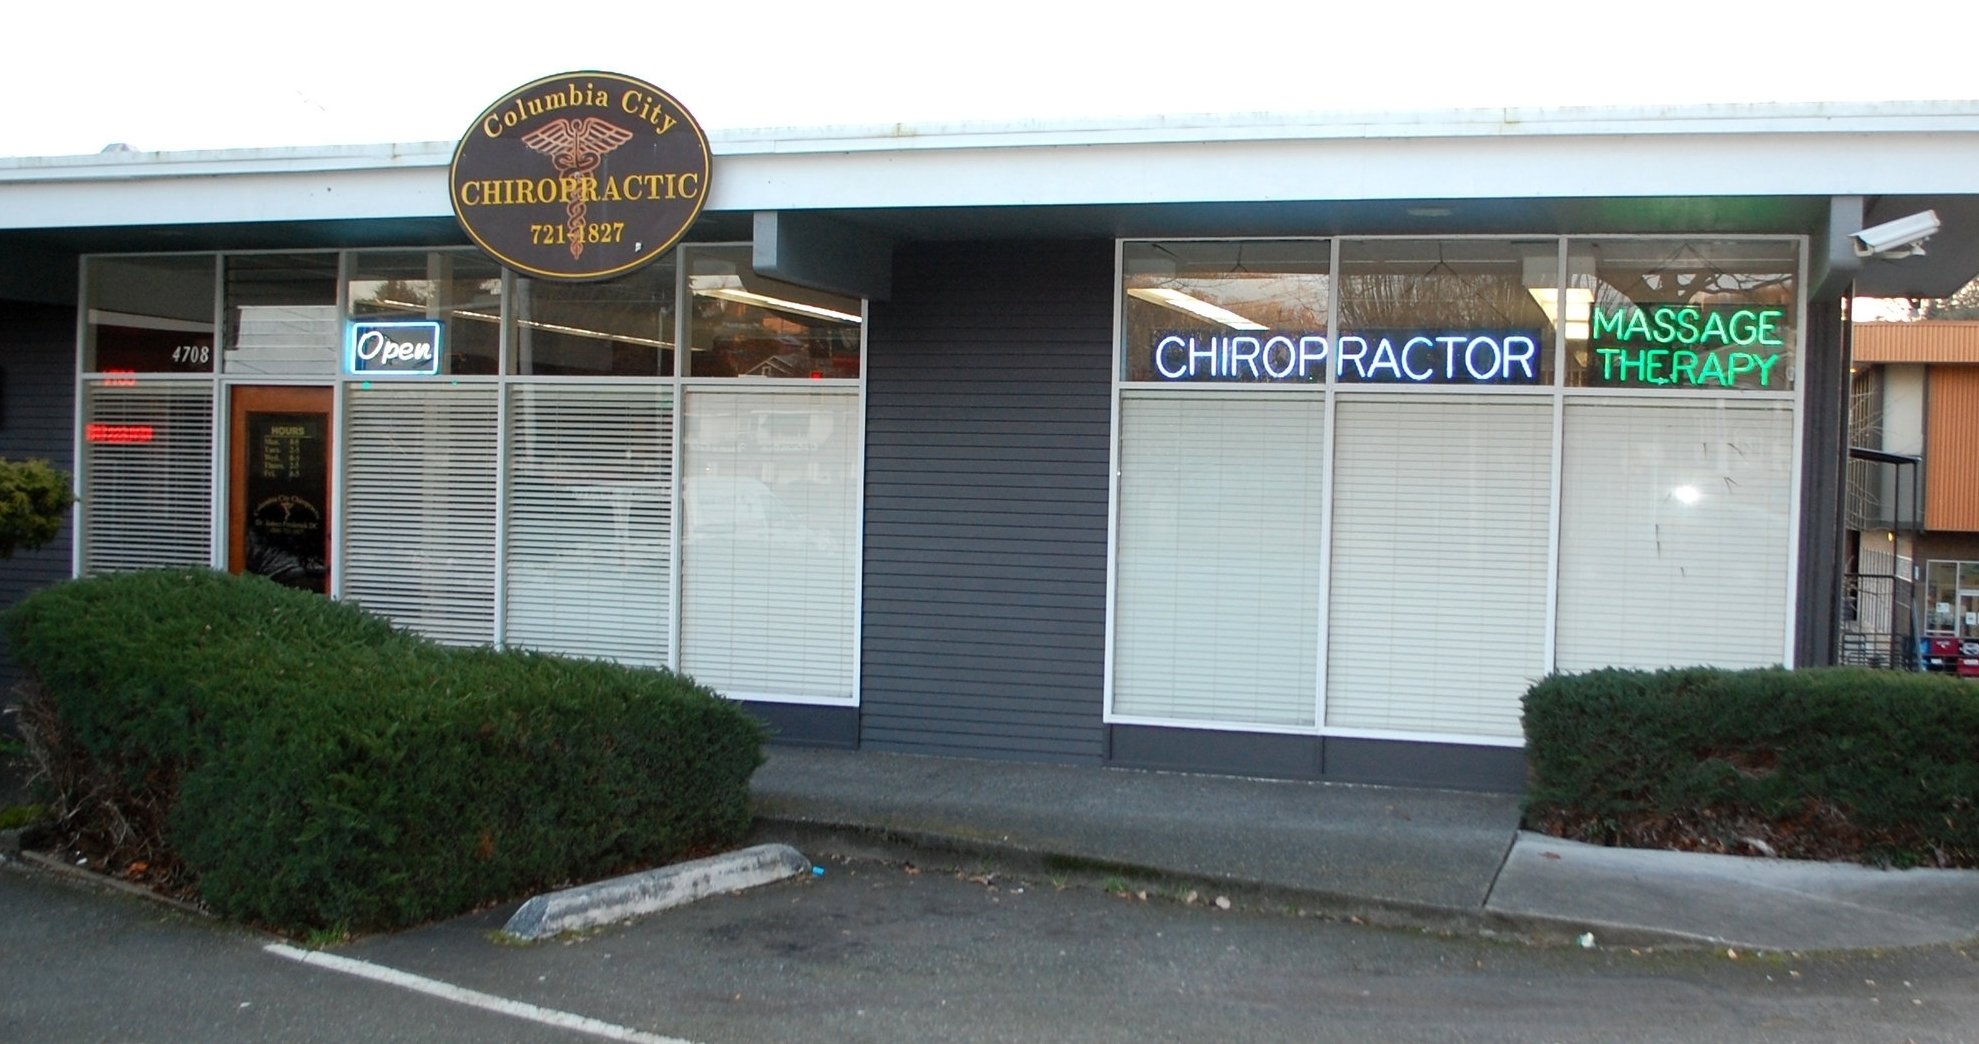 Columbia City Chiropractic Office. Columbia City Massage. Rainier Valley Chiropractor. South Seattle Chiropractor.